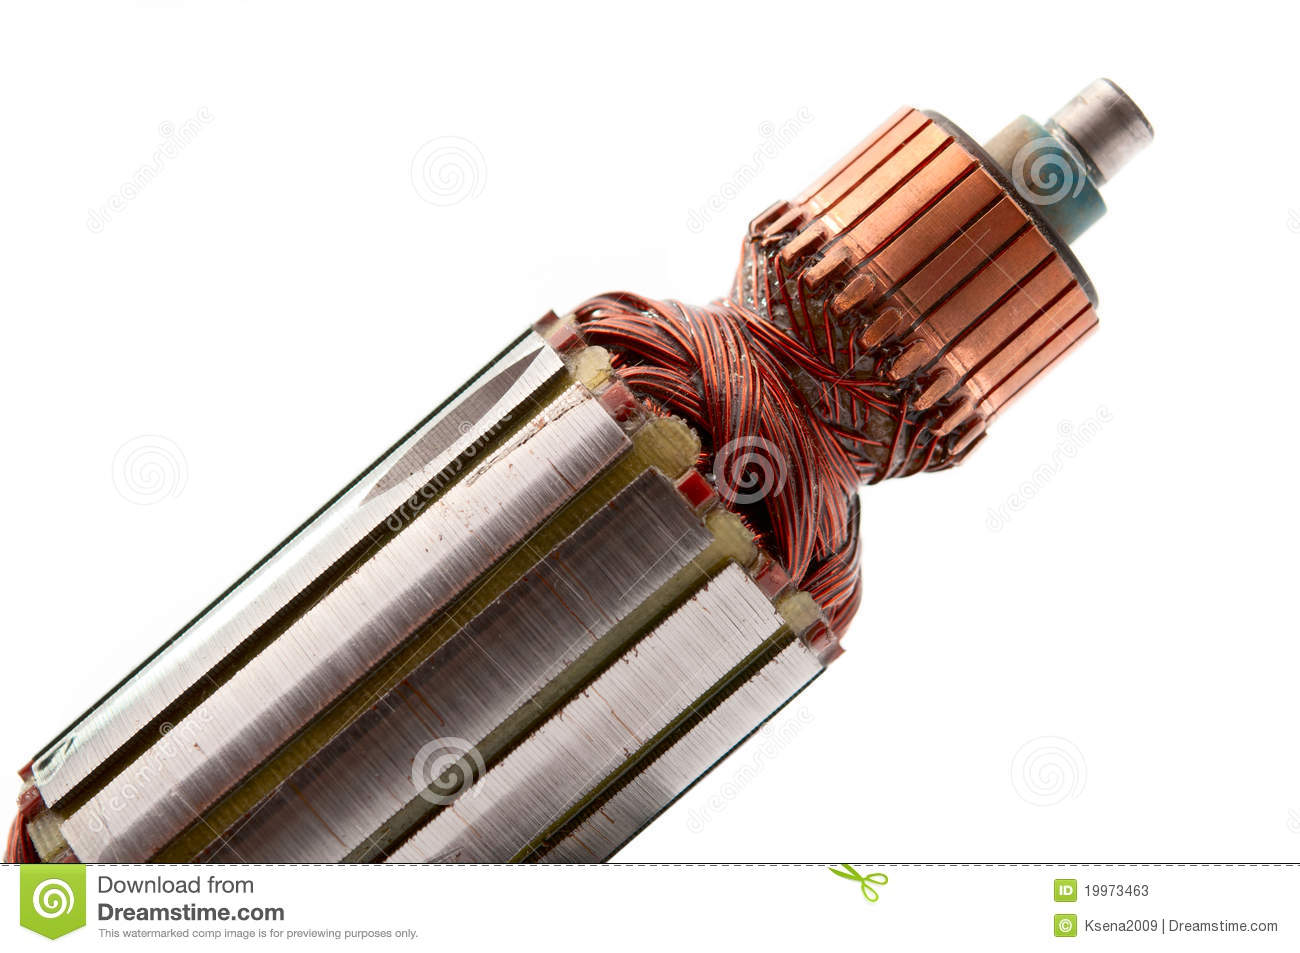 Copper Coils inside Electric Motor